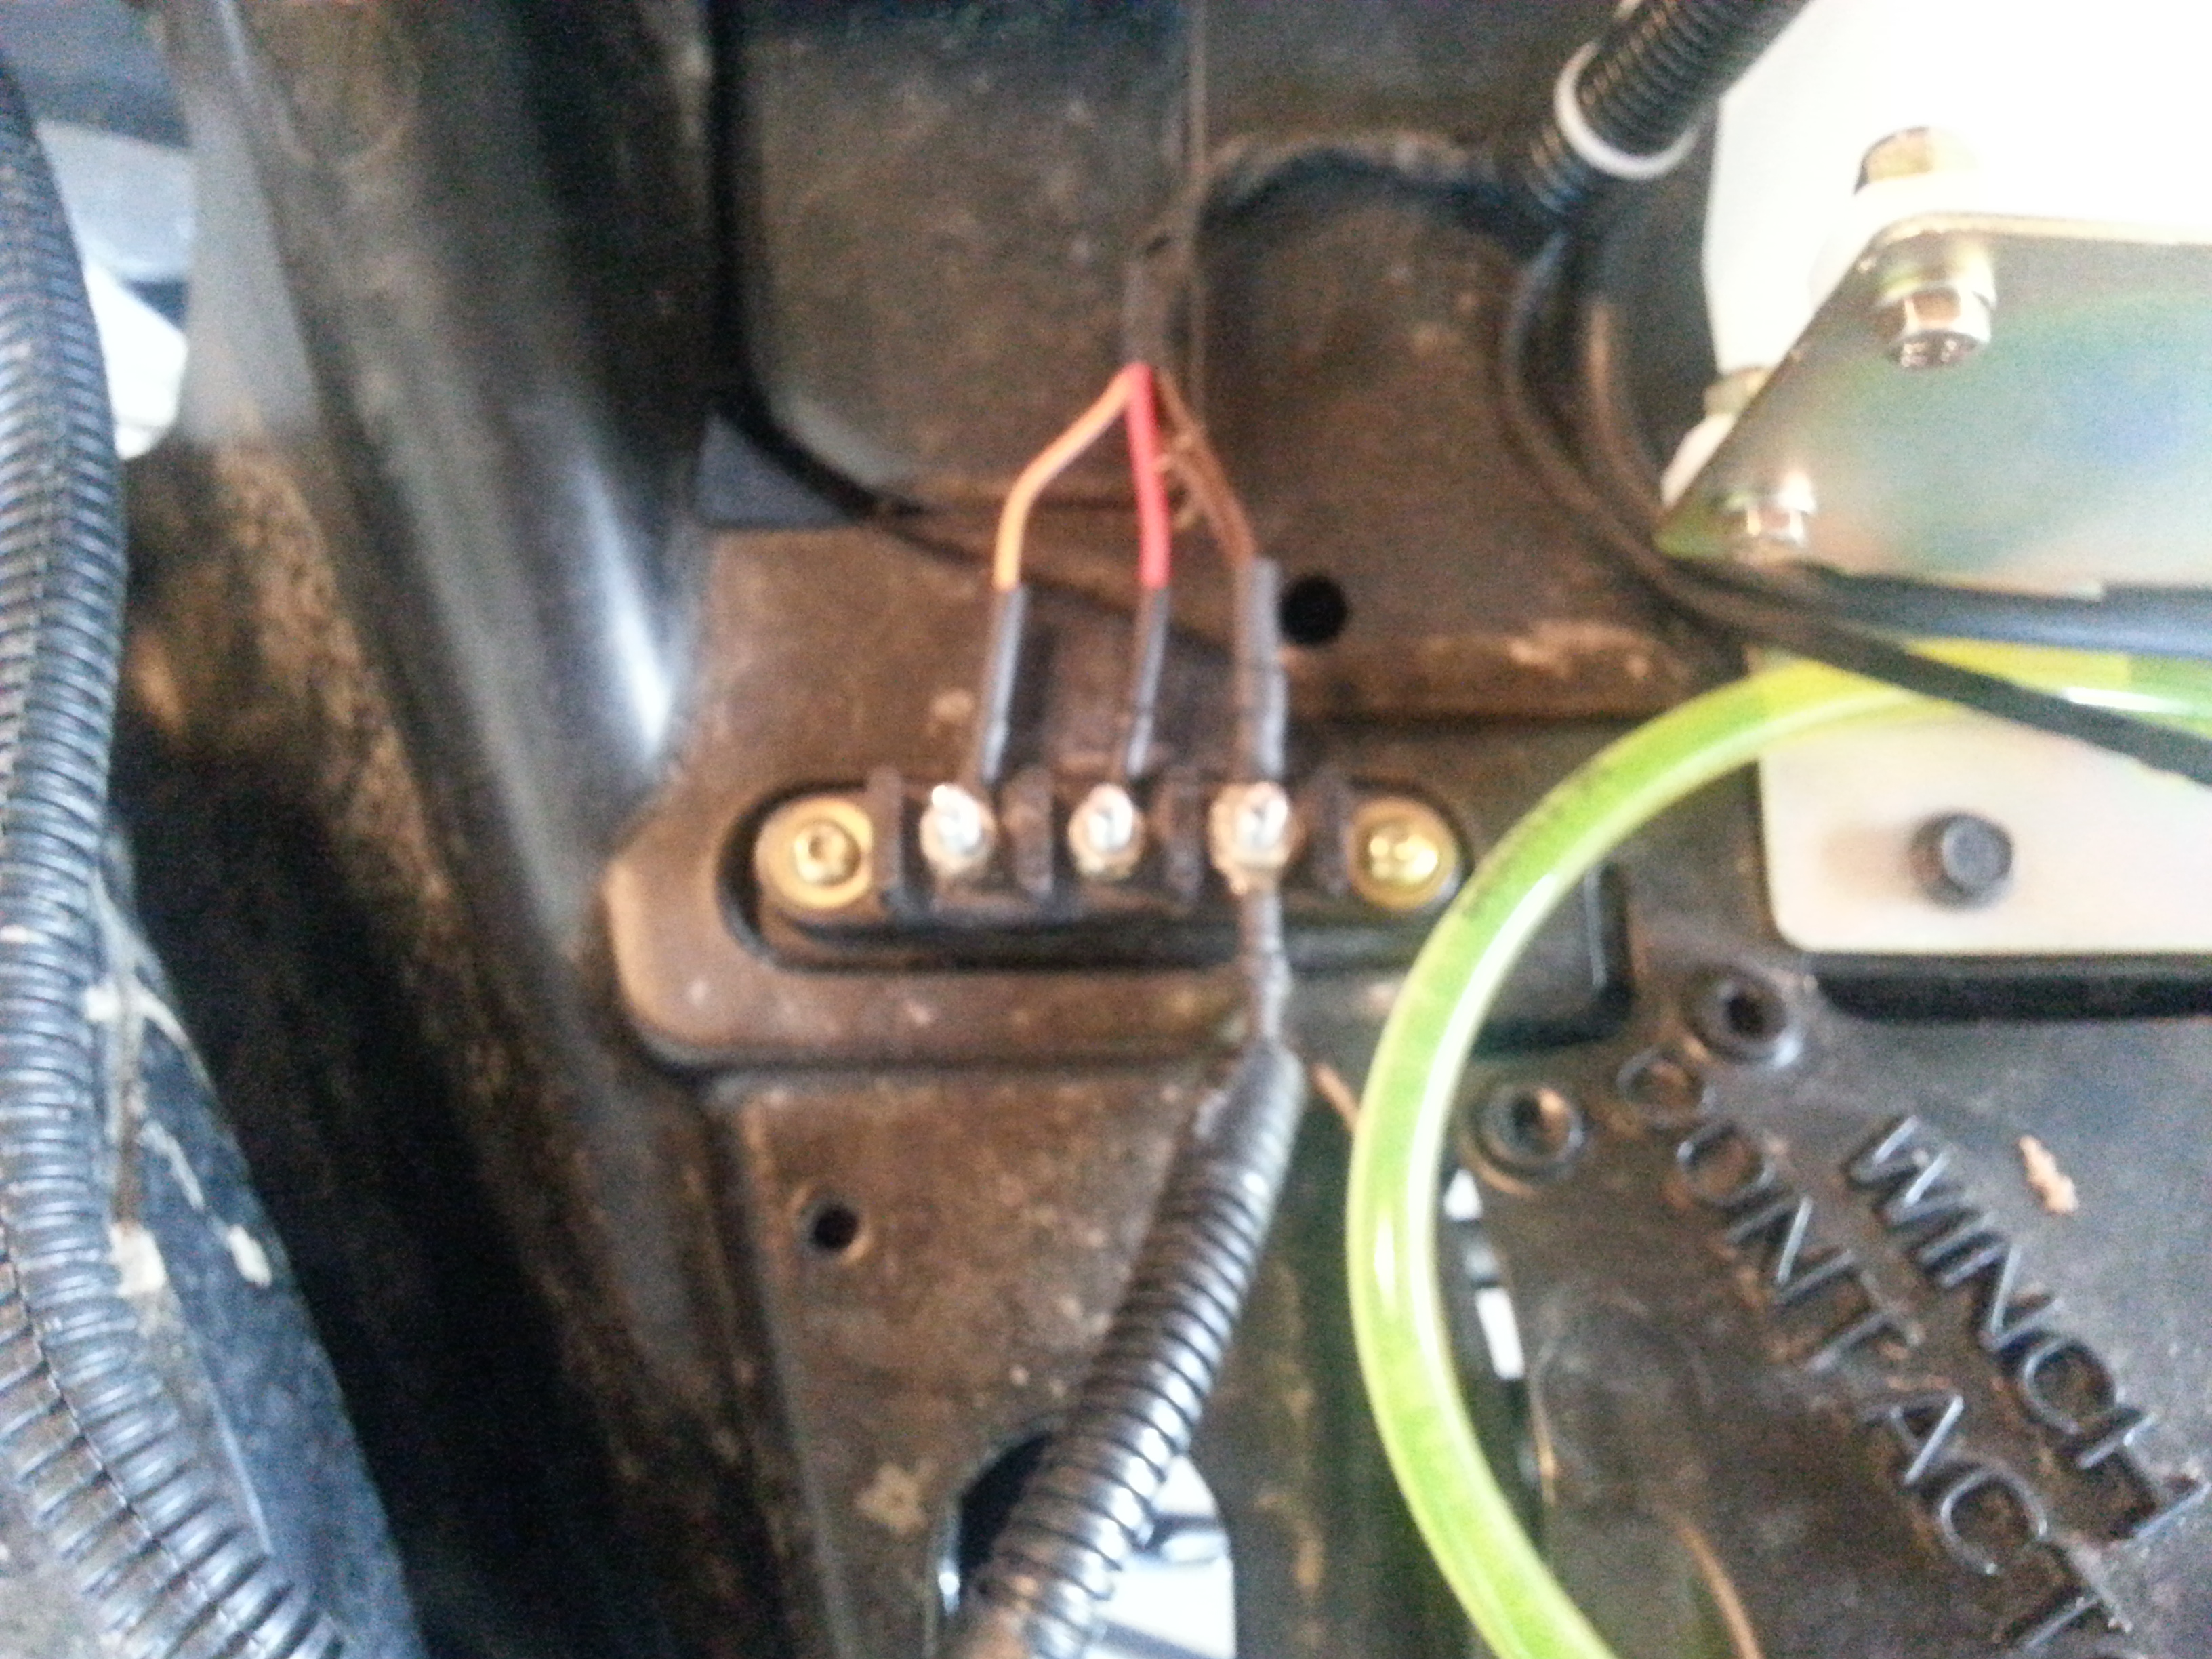 11300d1430266432 fuse block installation advice 20150425_154443 wiring diagram for 2008 polaris sportsman 500 ireleast 2015 Polaris Ranger Fuse Box at crackthecode.co